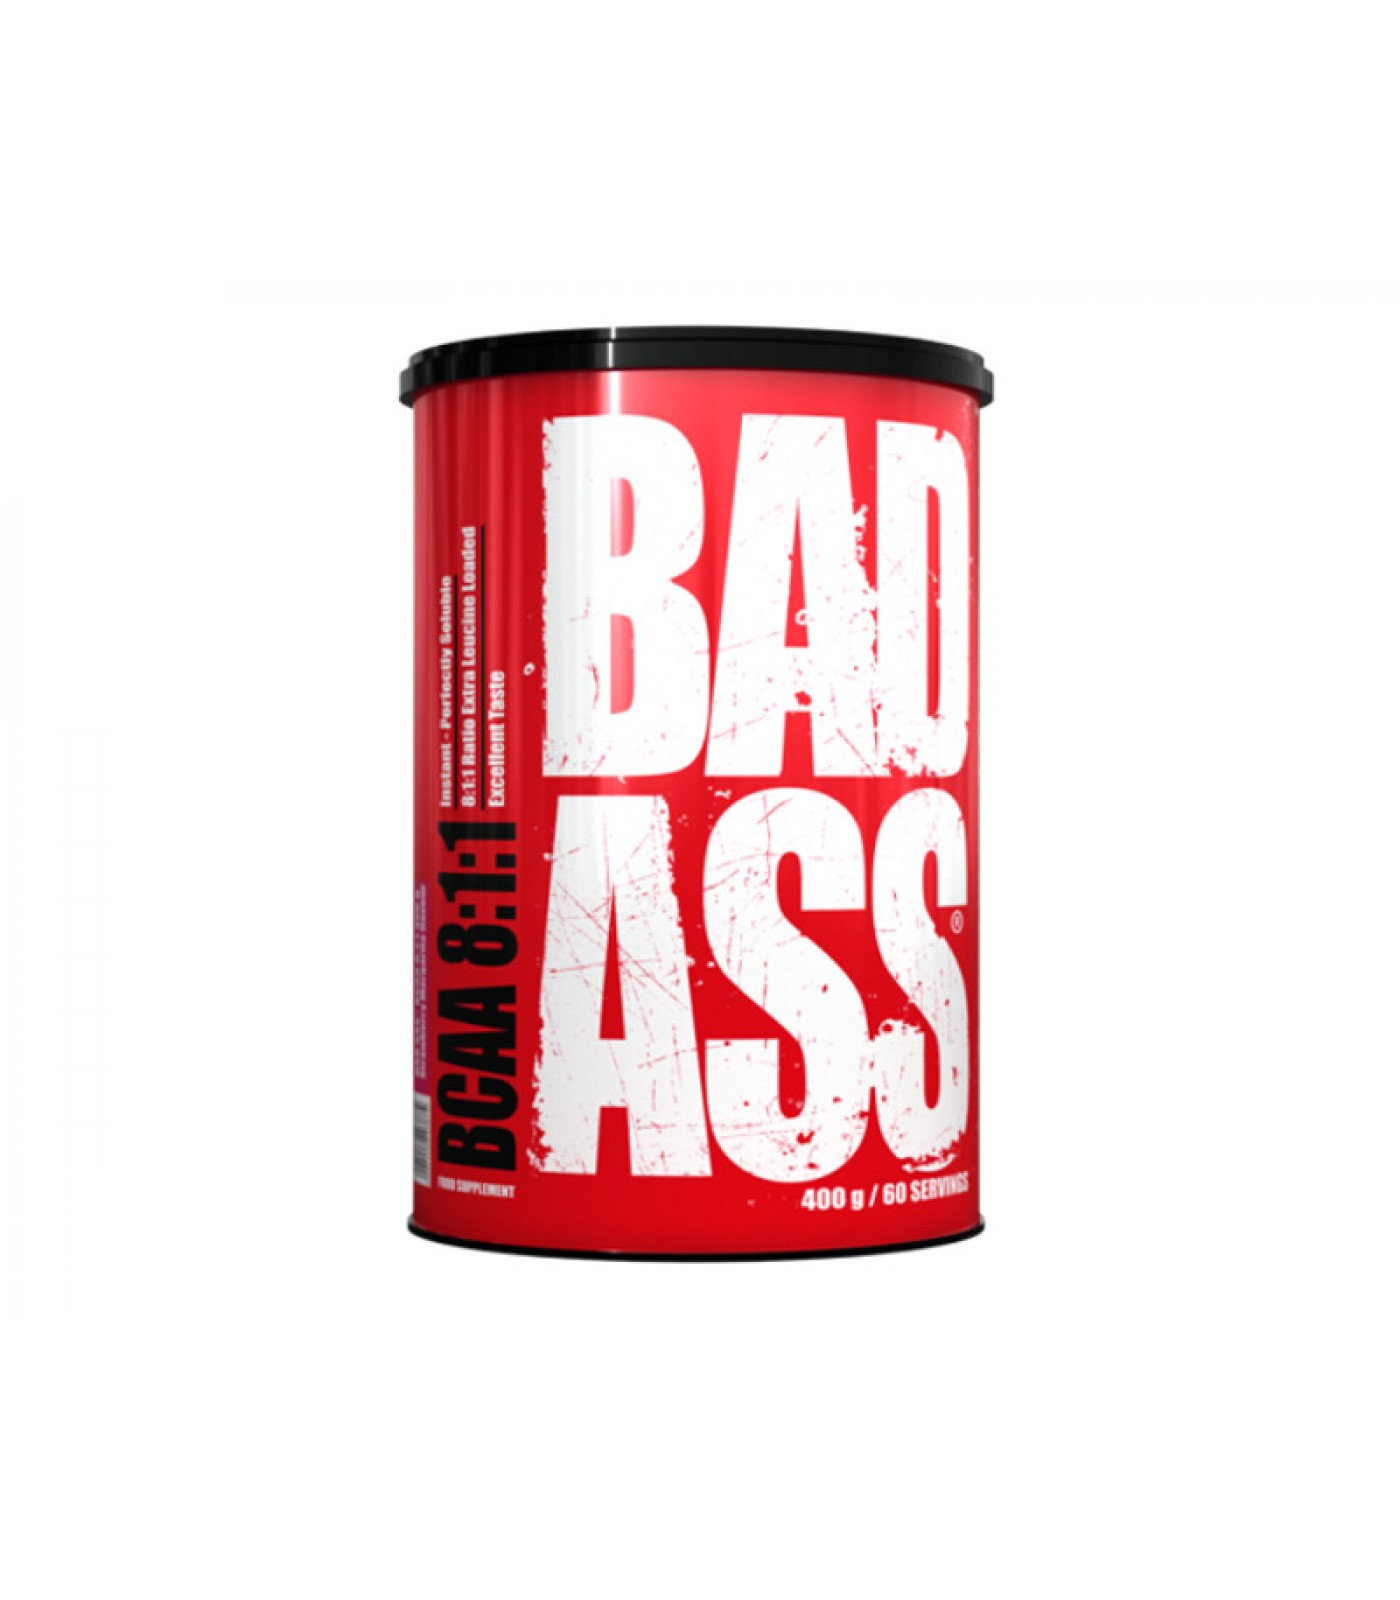 BAD ASS - BAD ASS / BCAA 8:1:1